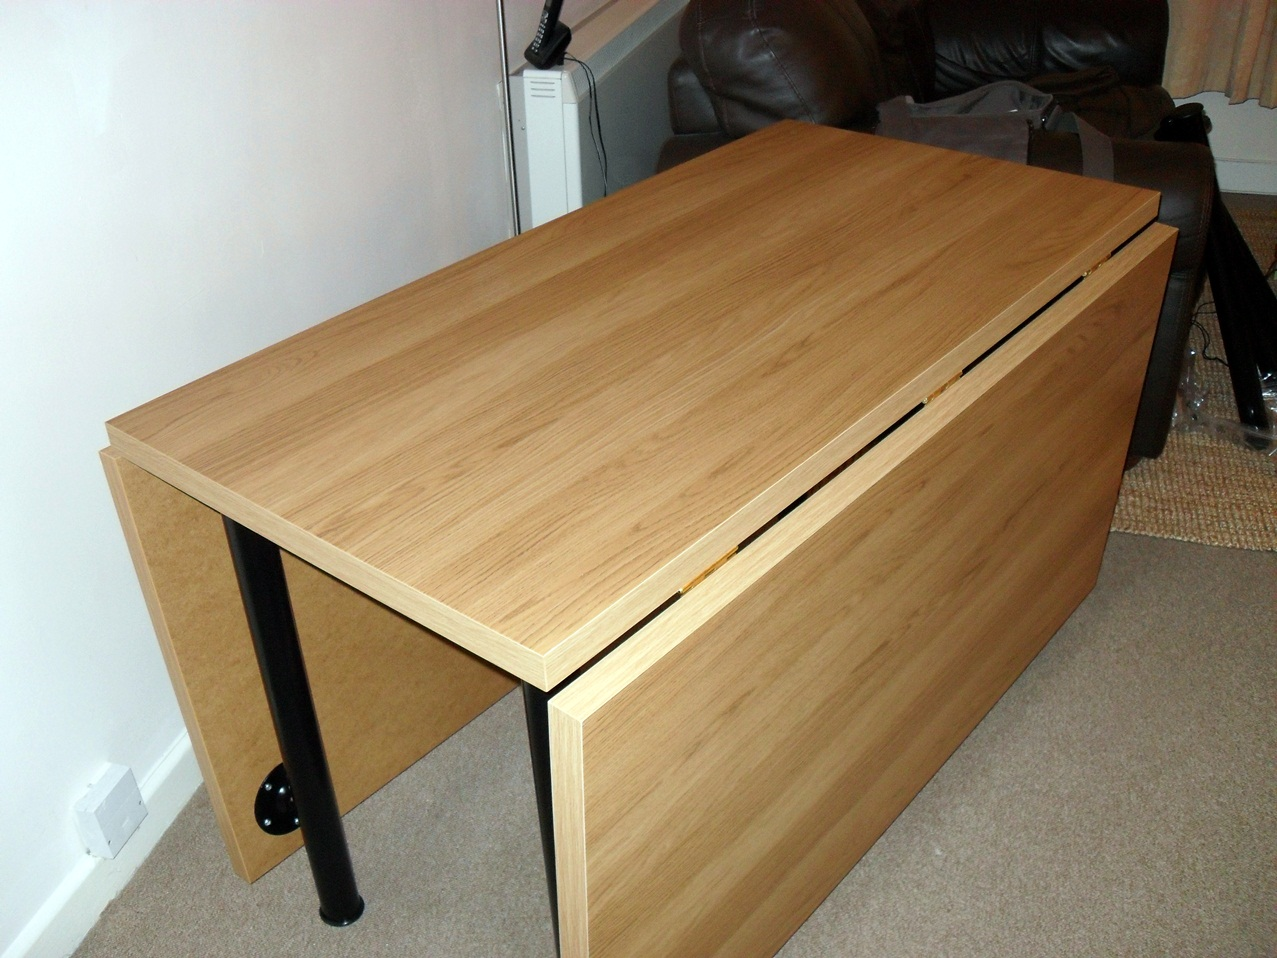 The brazen fist ikea gaming table for Ikea gaming table